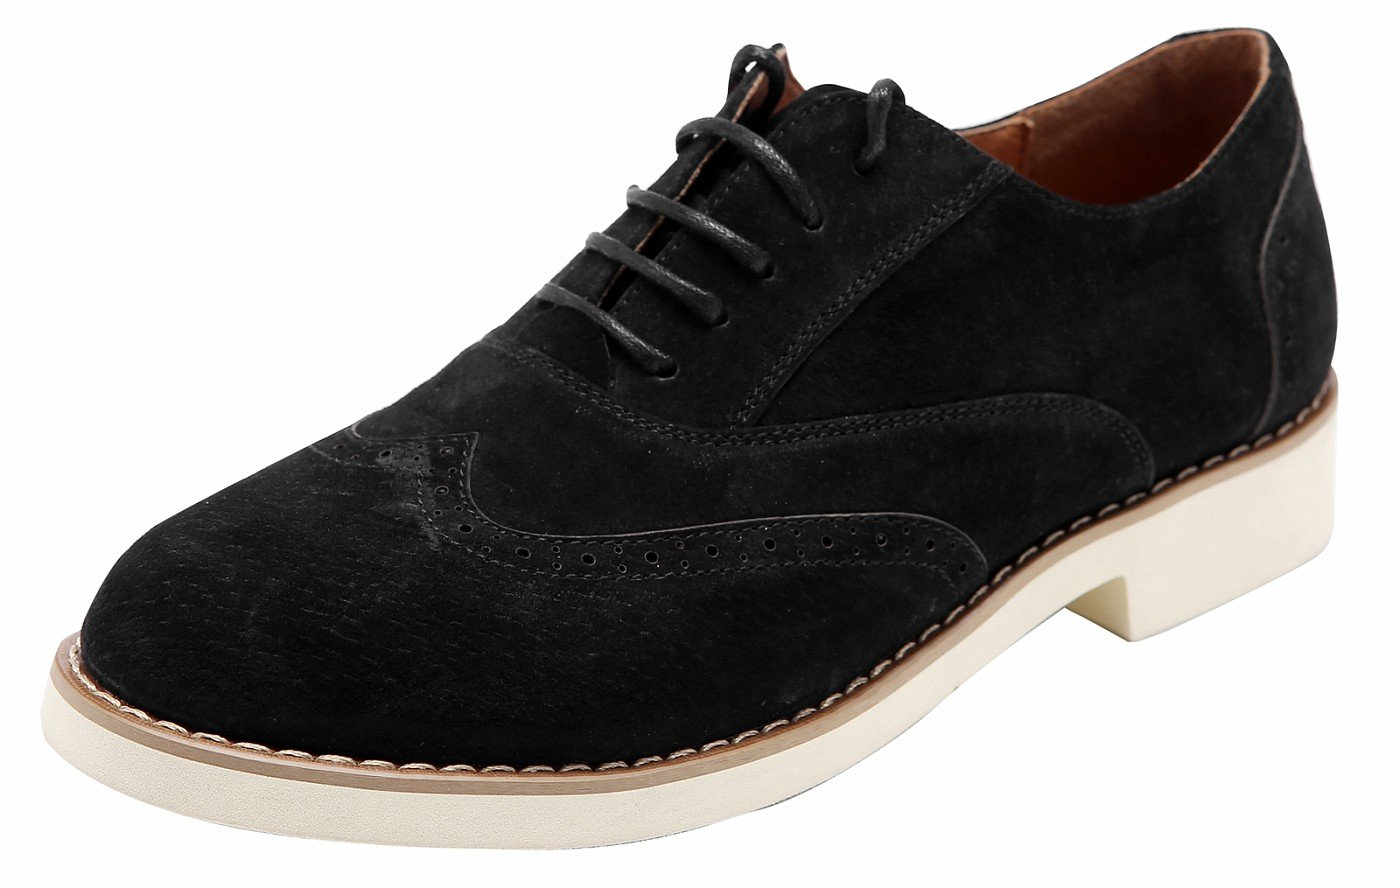 Ulite Ladys Solid Color Perforated Suede Leather Lace-up Low Heel Oxfords, Comfortable Casual Walking Oxfords blk8